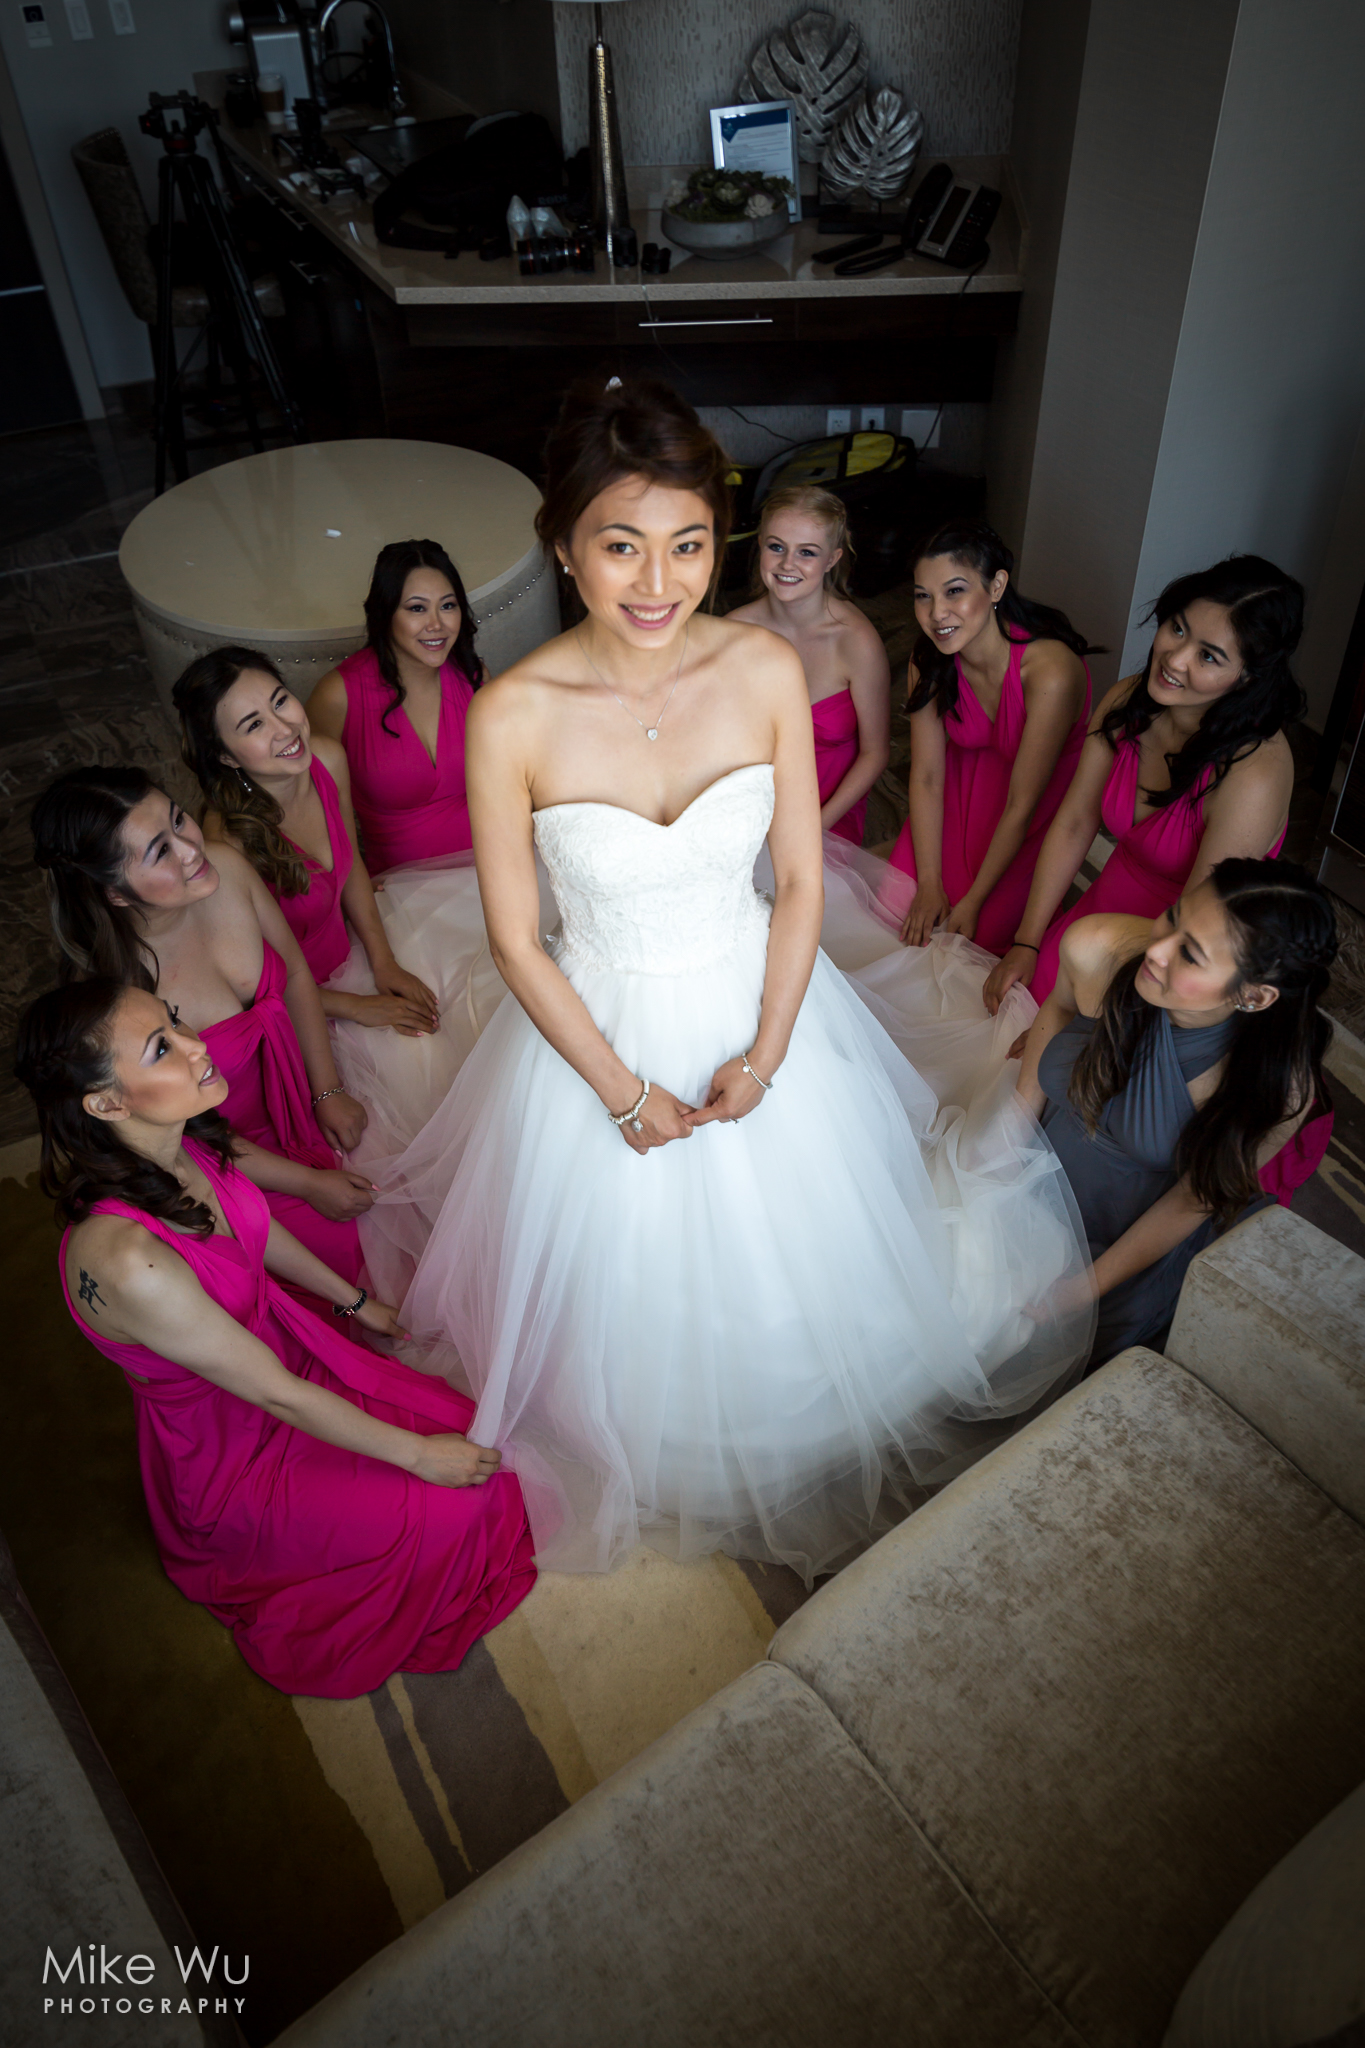 bride, smile, bridesmades, circle, huddled, love, pink, white, wedding dress, natural light, window, wedding photography, photographer, vancouver, wedding, getting ready, portrait, group